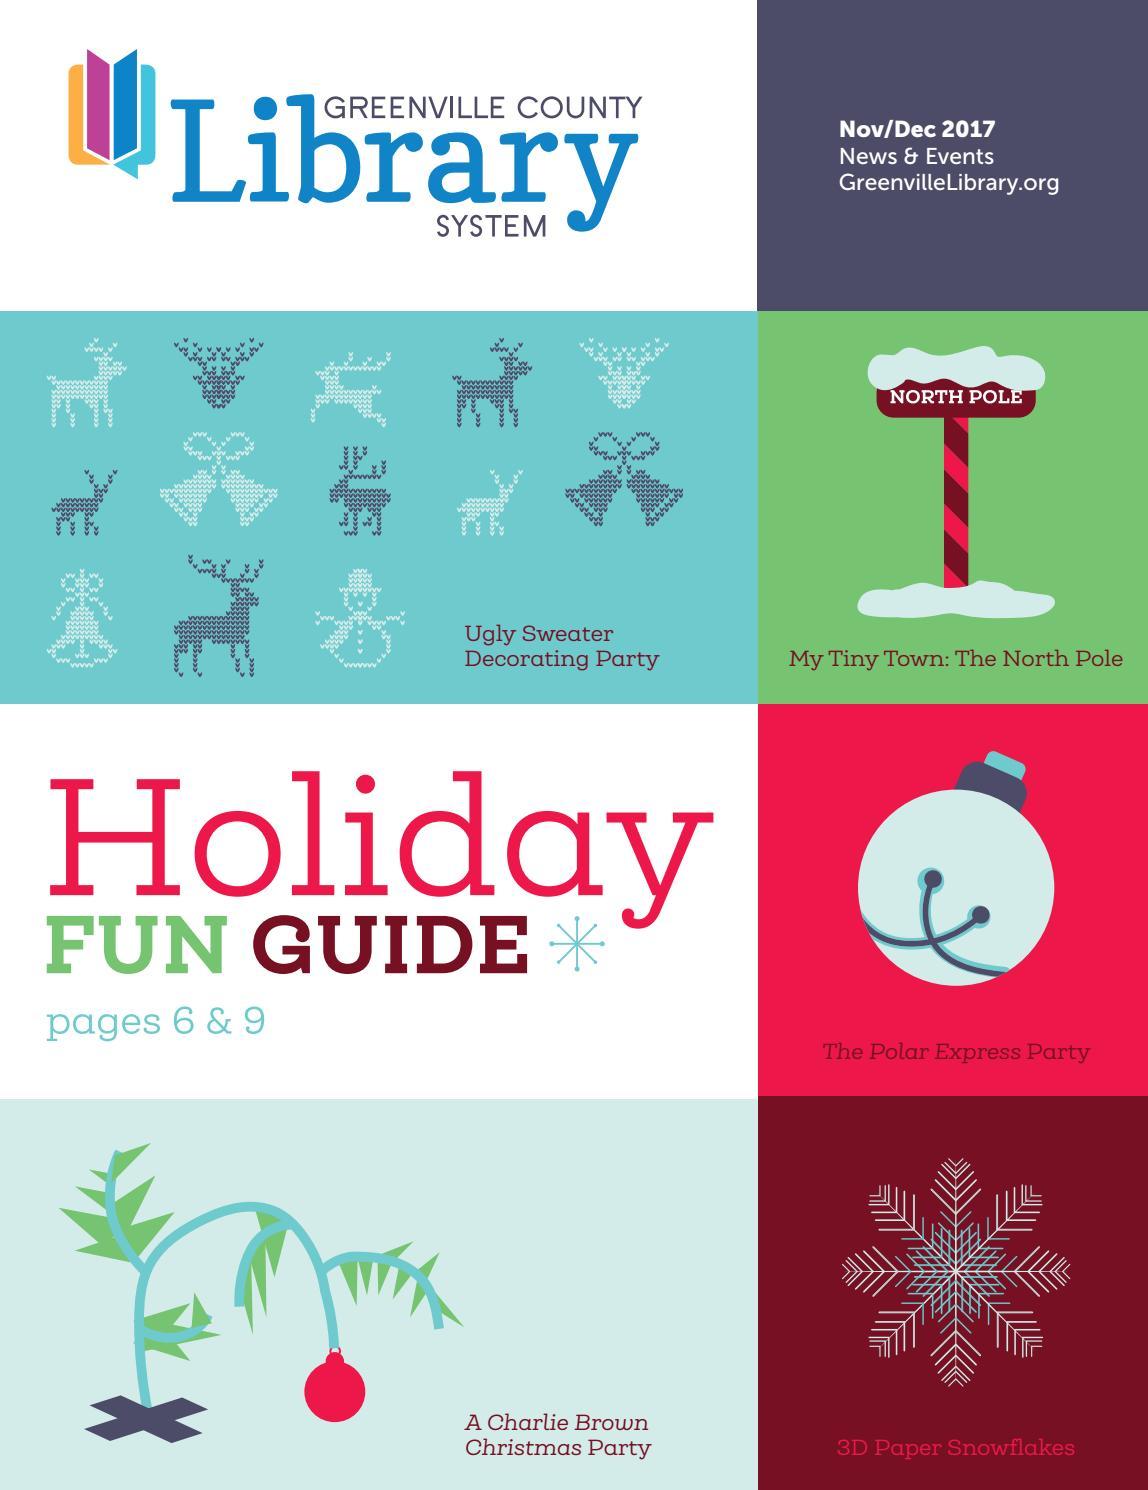 Nov/Dec 17 by Greenville County Library System - issuu